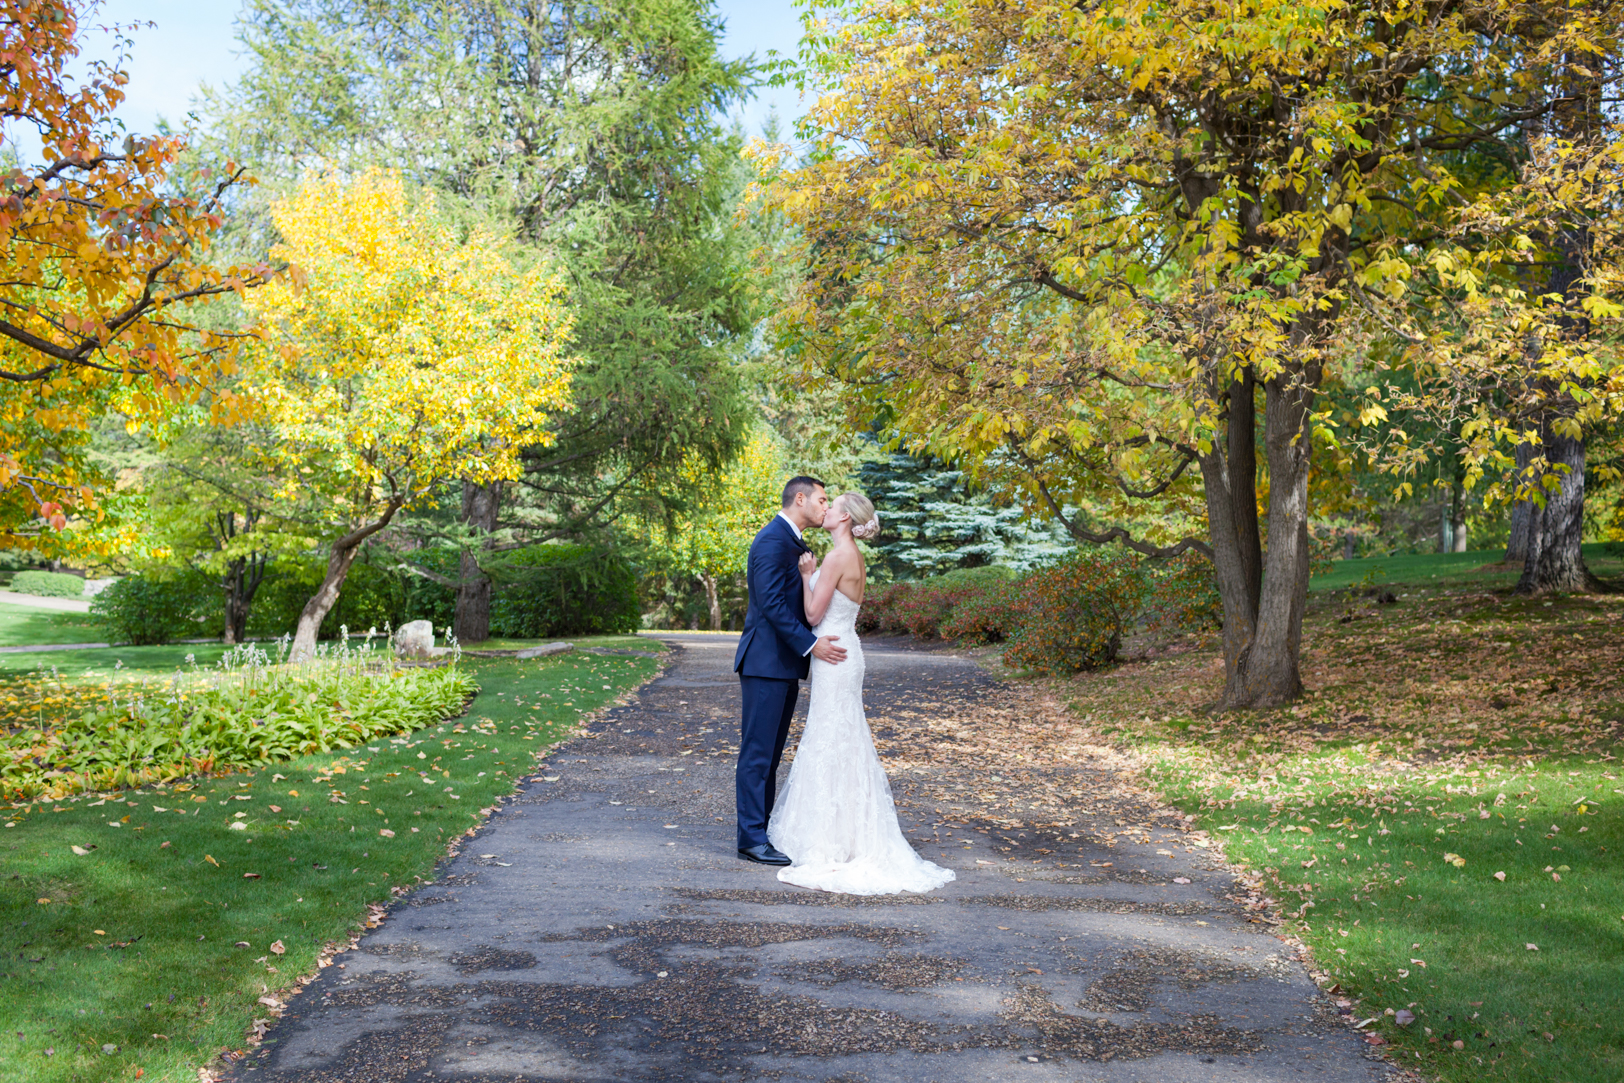 Bridal couple wedding portrait University of Alberta Botanic Garden